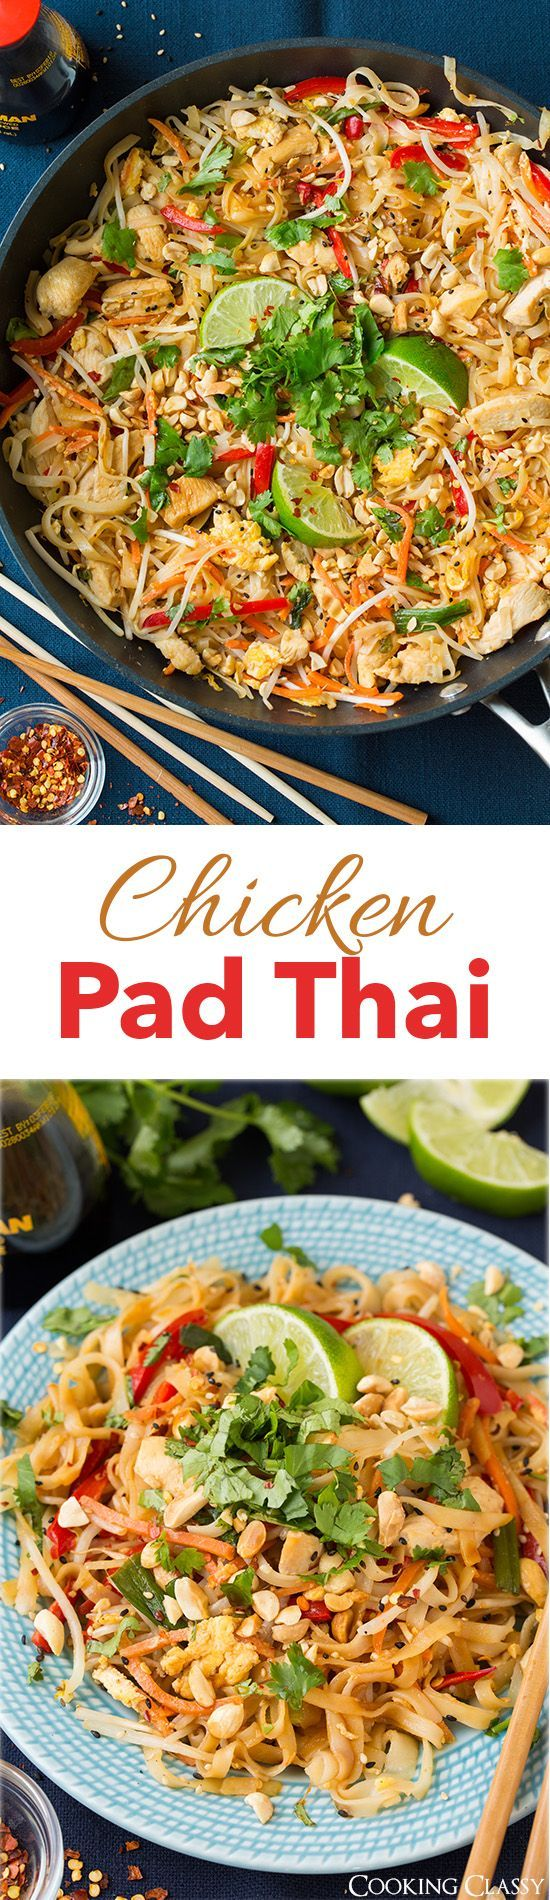 Chicken Pad Thai - If your family loves Thai food, you'll love this! Delicious crave worthy flavors.